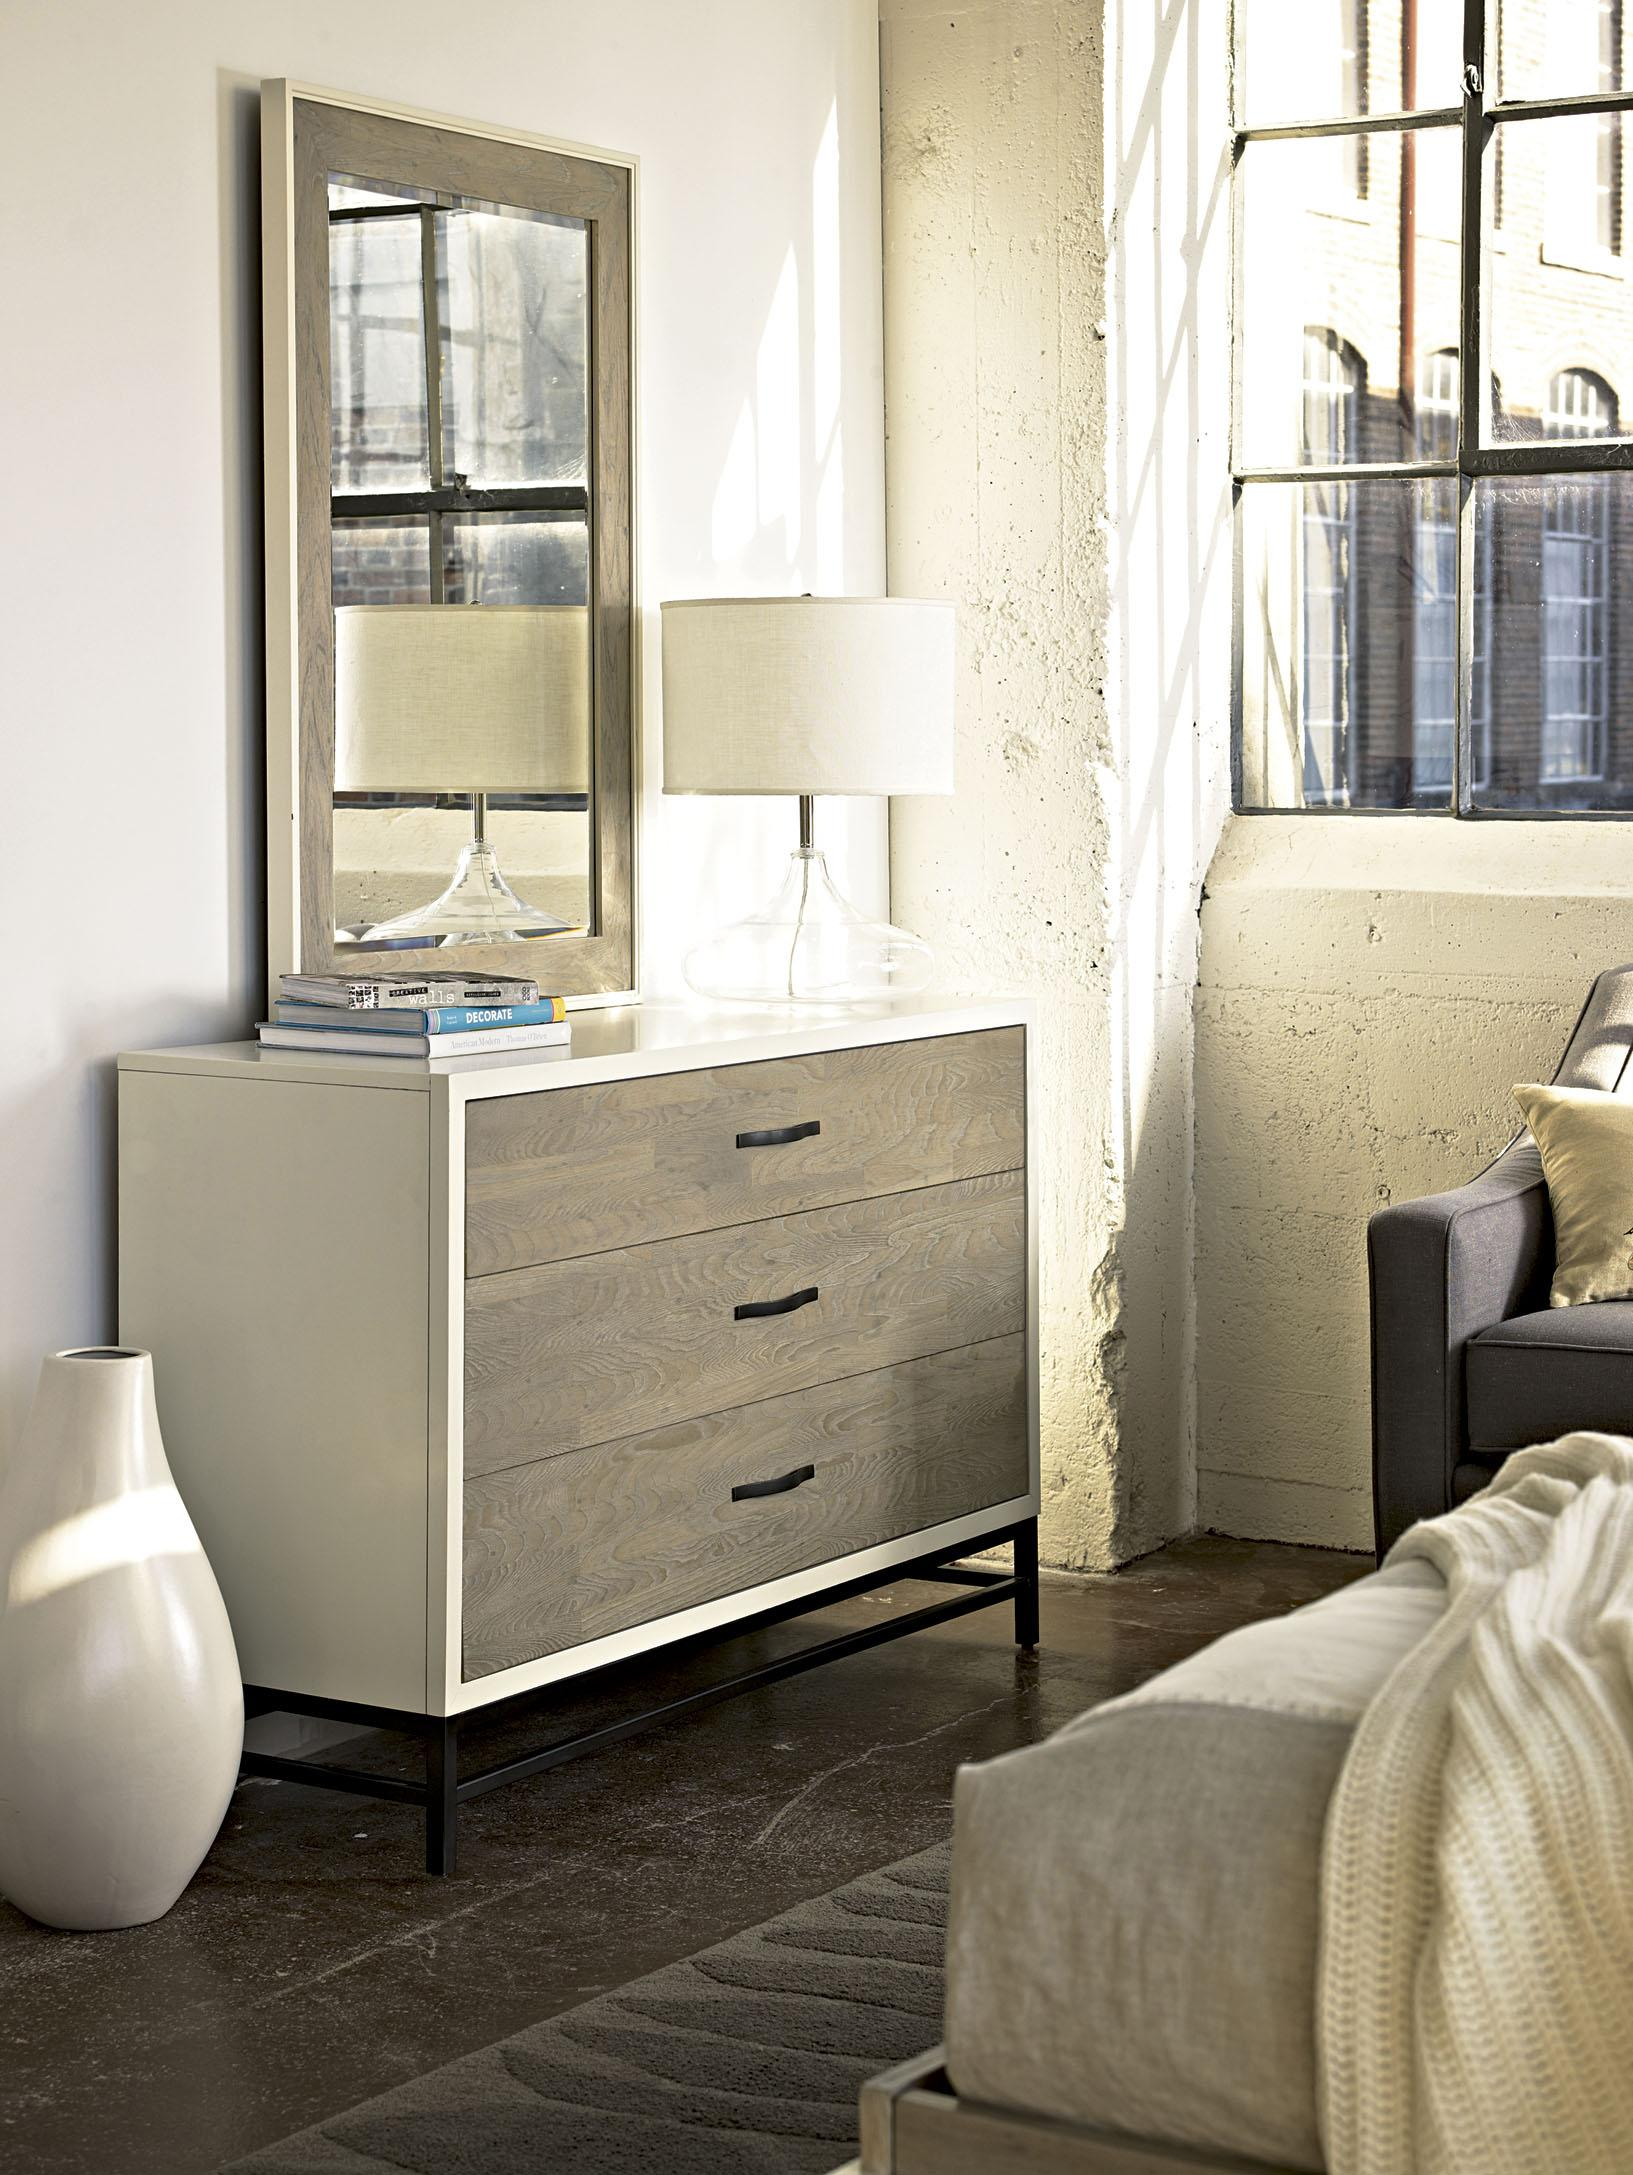 Marks and spencer bedroom chest of drawers www for Bedroom furniture marks and spencer